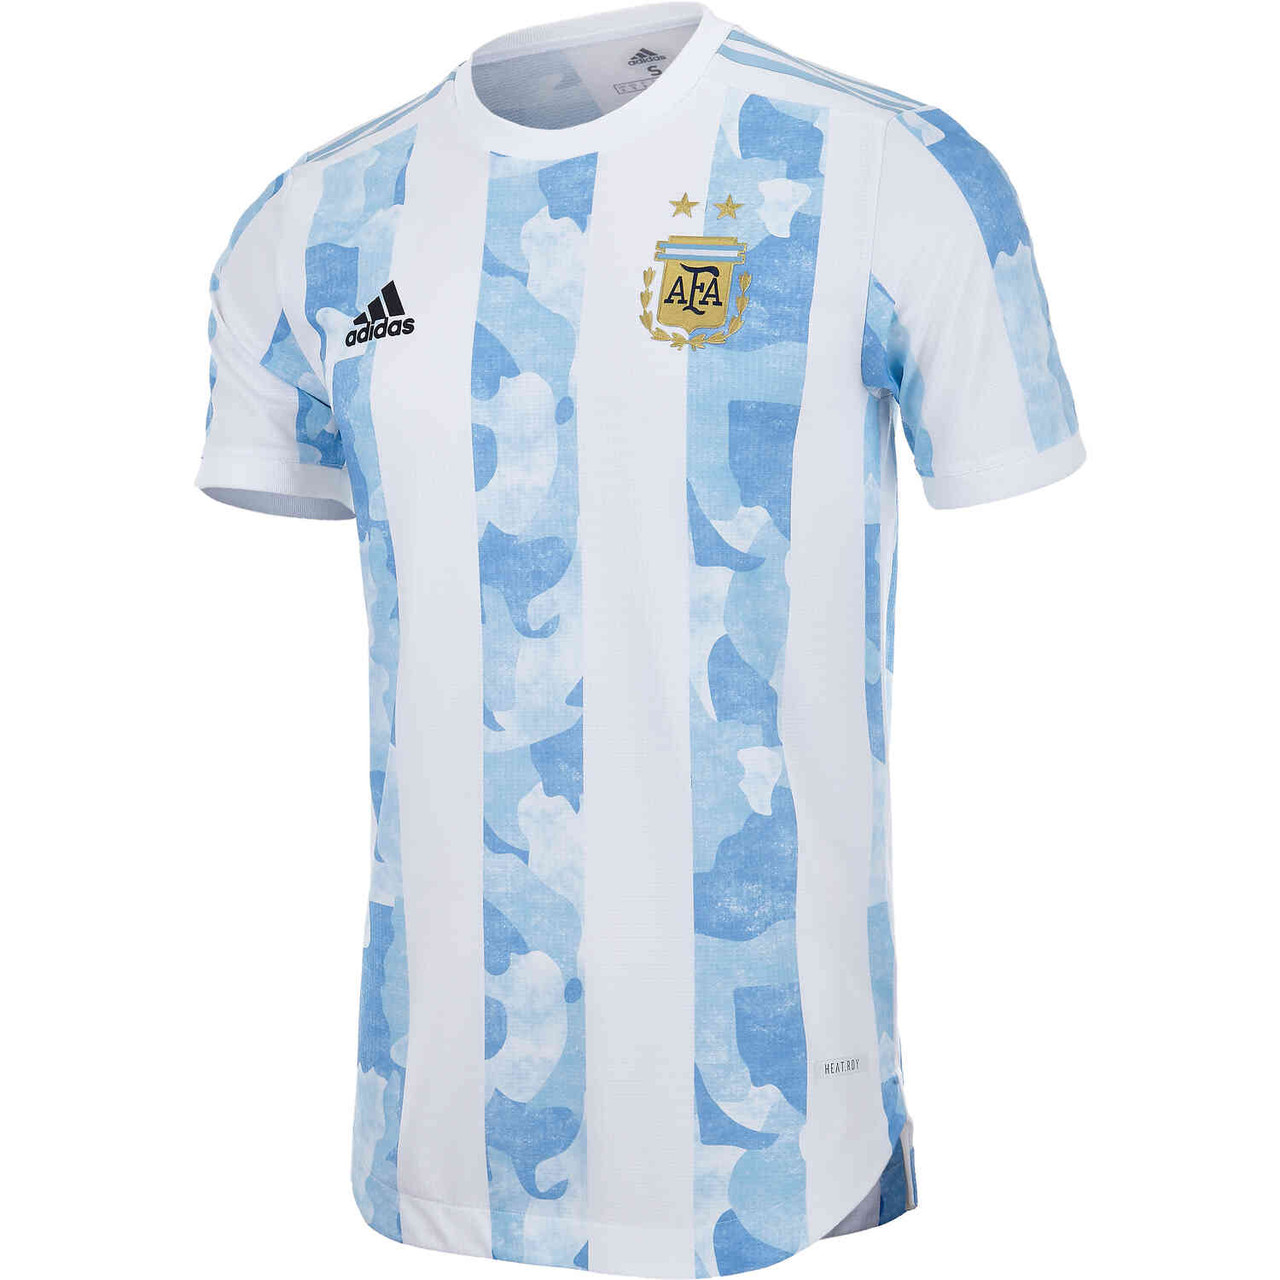 ADIDAS ARGENTINA 2021 AUTHENTIC HOME JERSEY